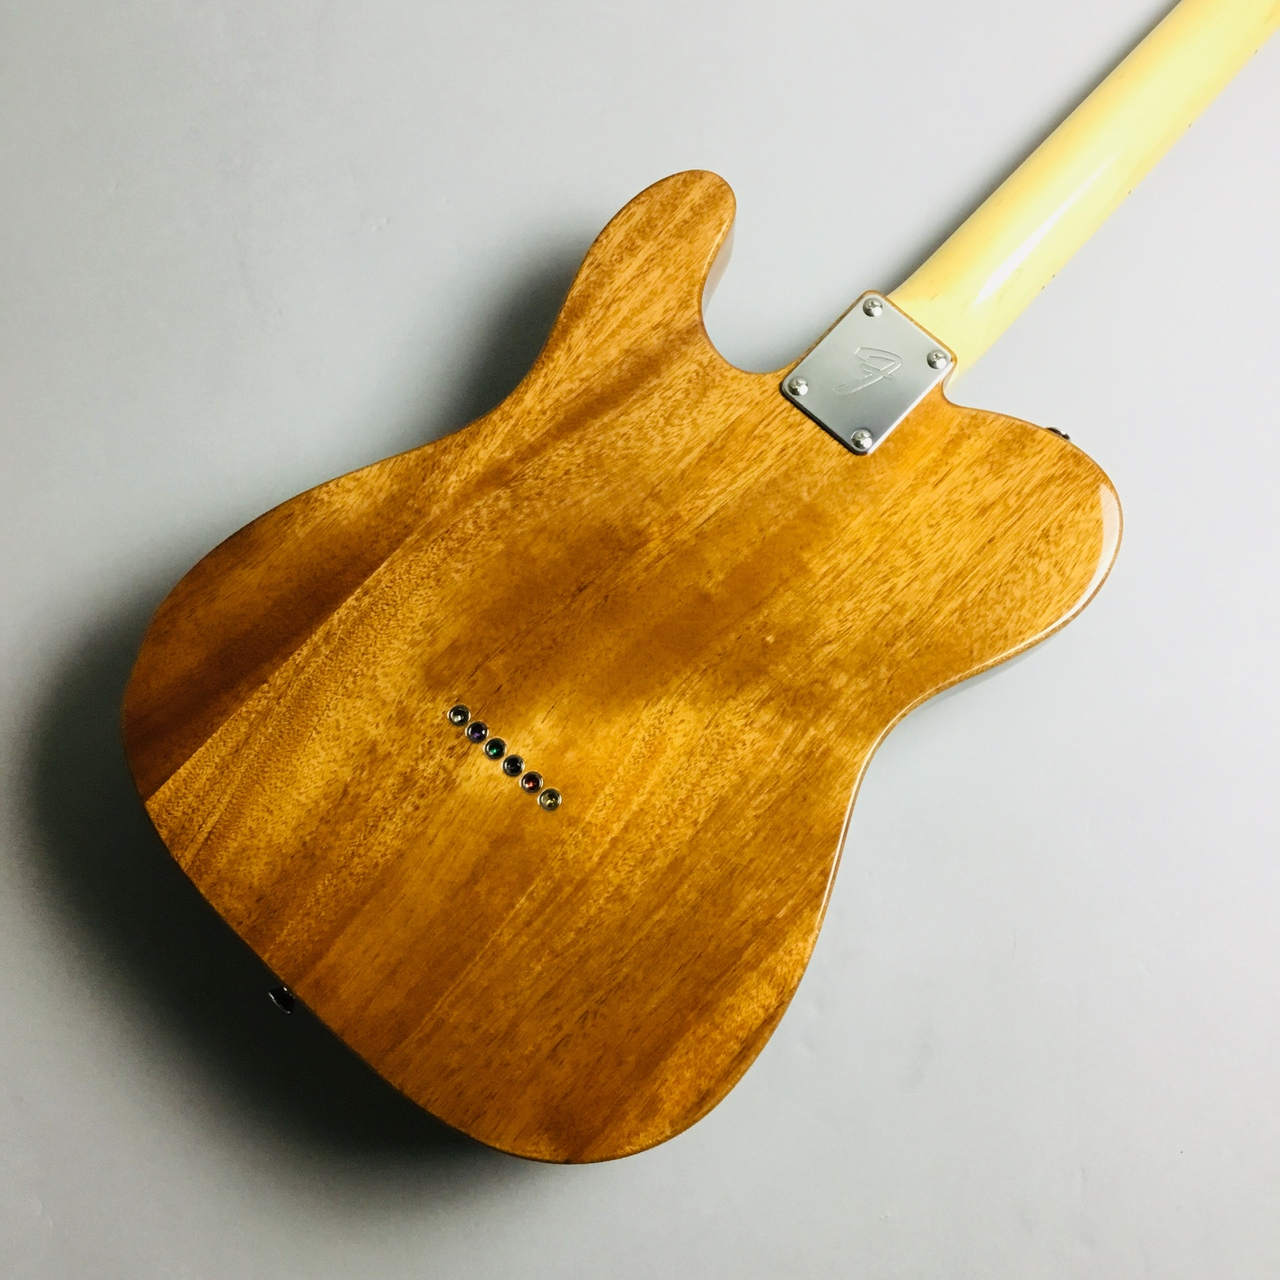 MADE IN JAPAN TRADITIONAL 69 TELECASTER THINLINEのボディバック-アップ画像